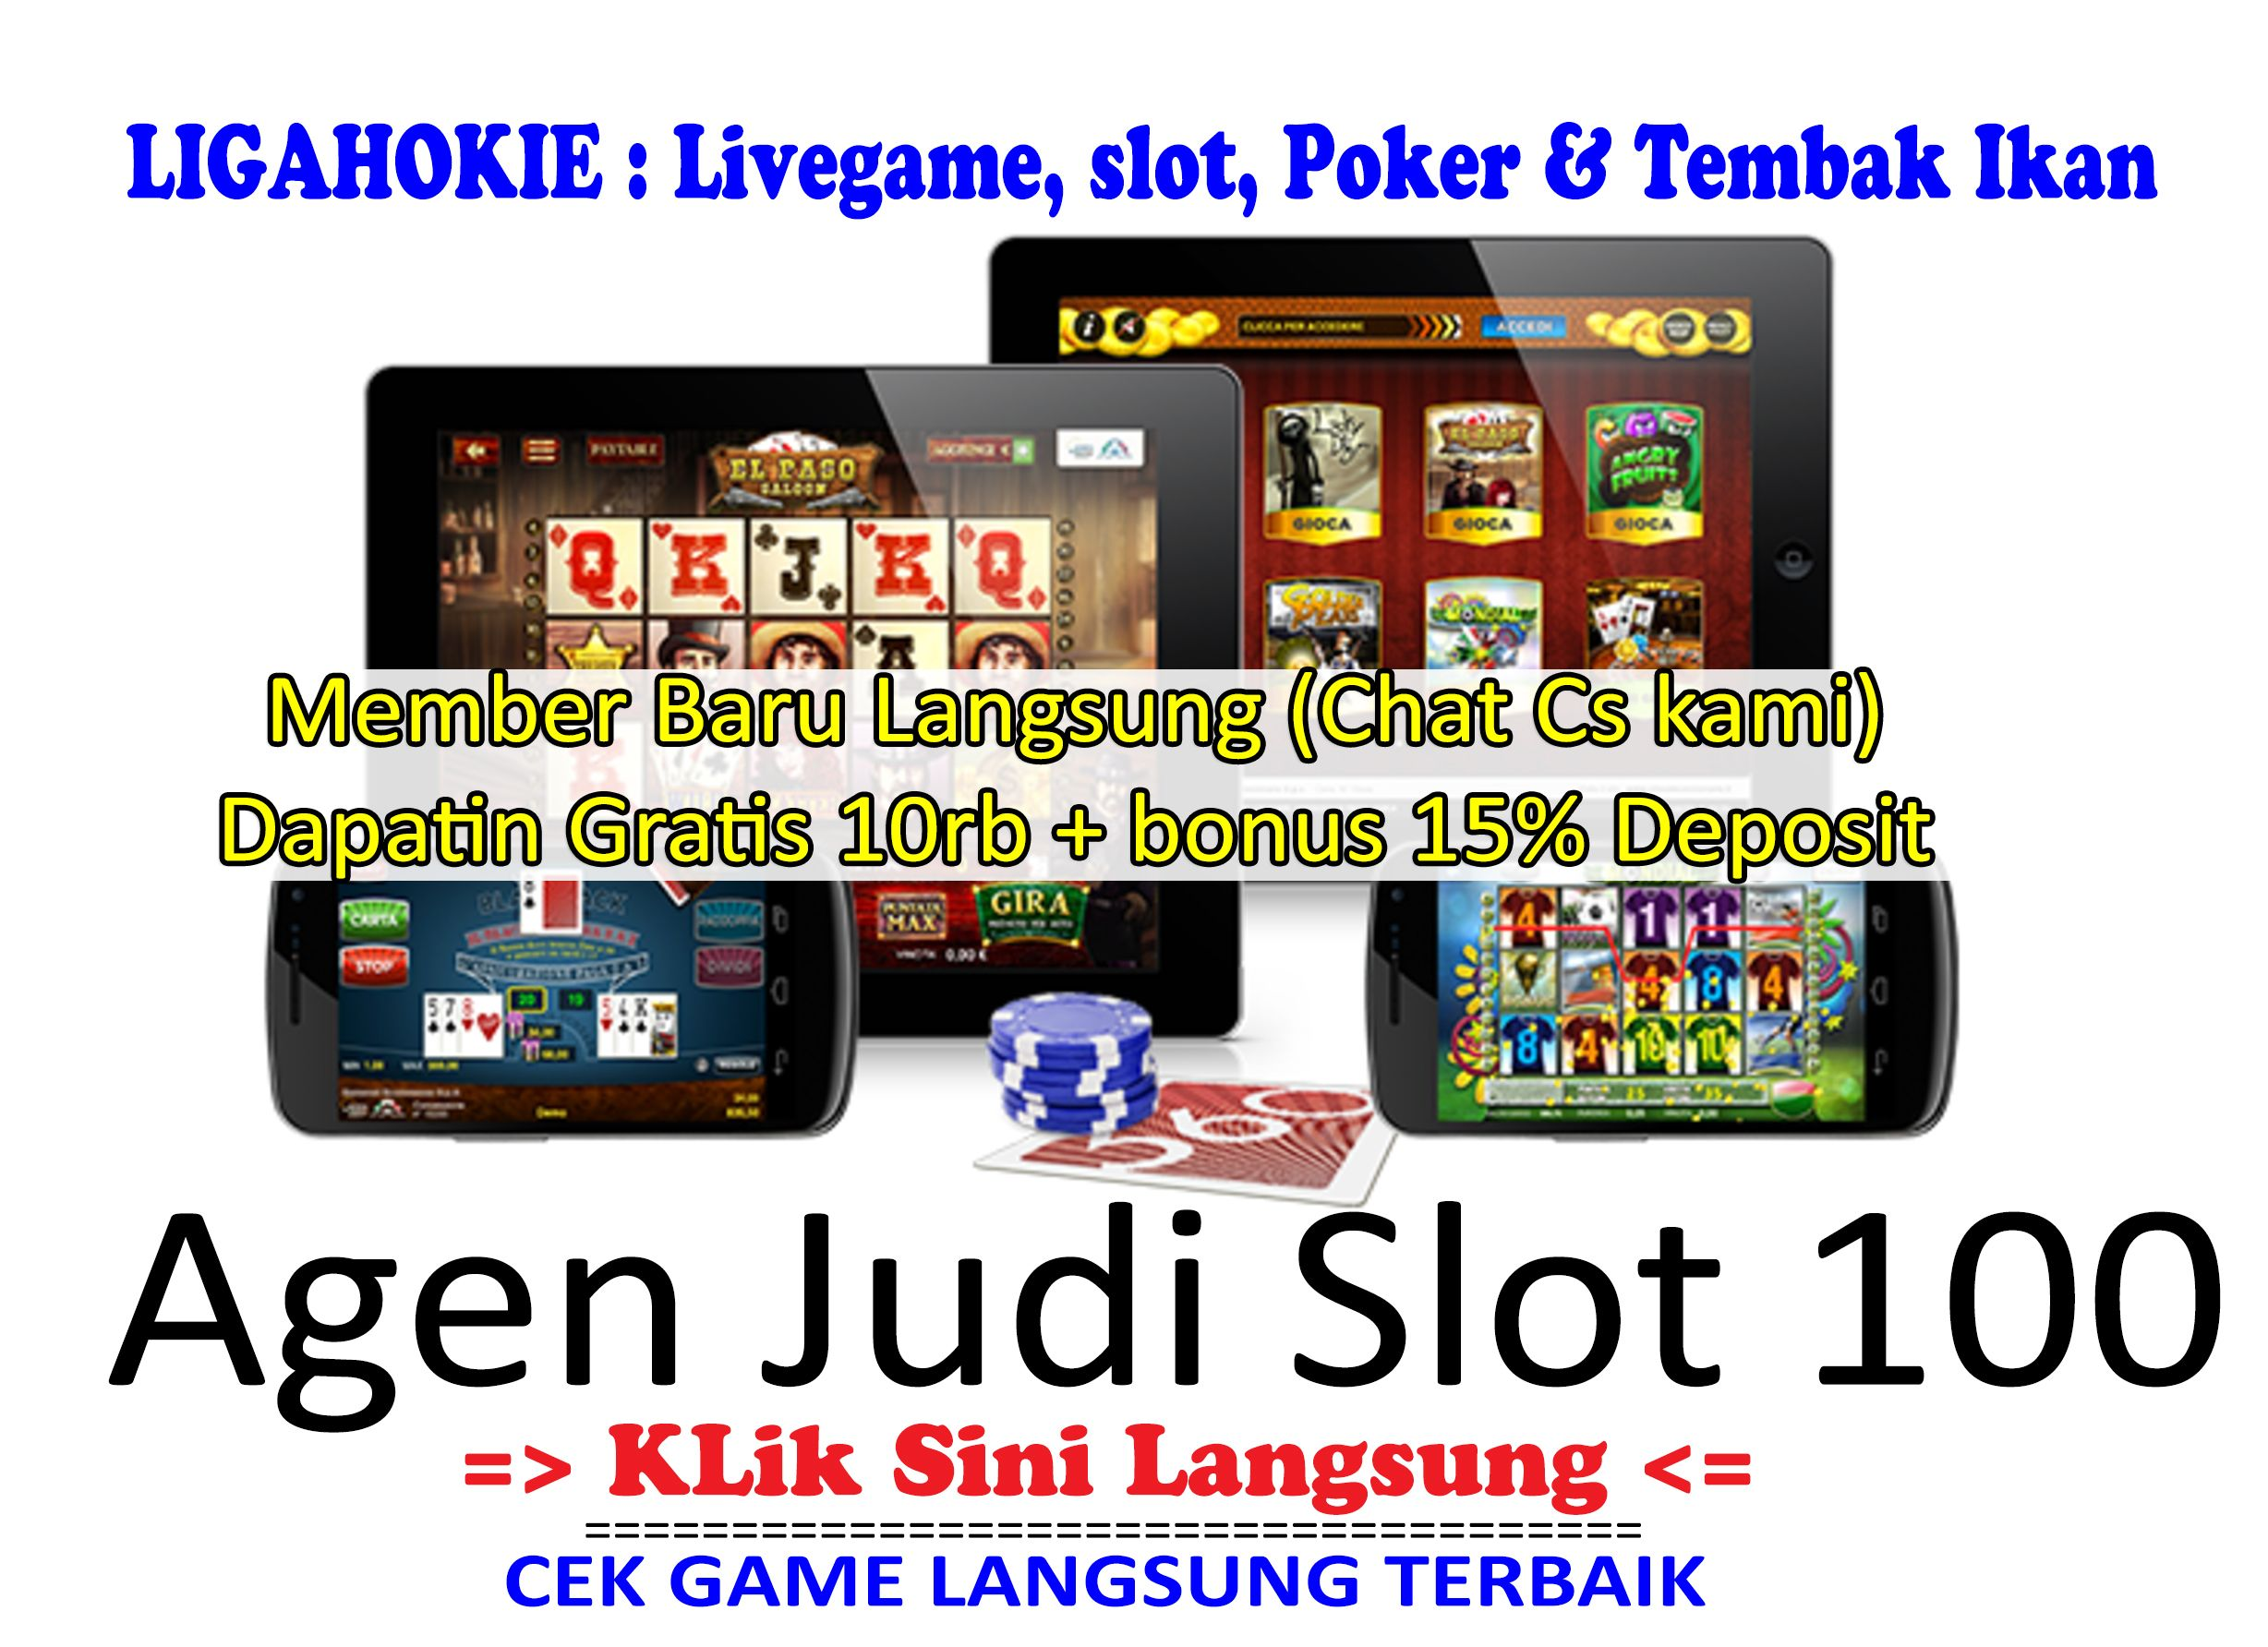 Pin On Agen Judi Slot 100